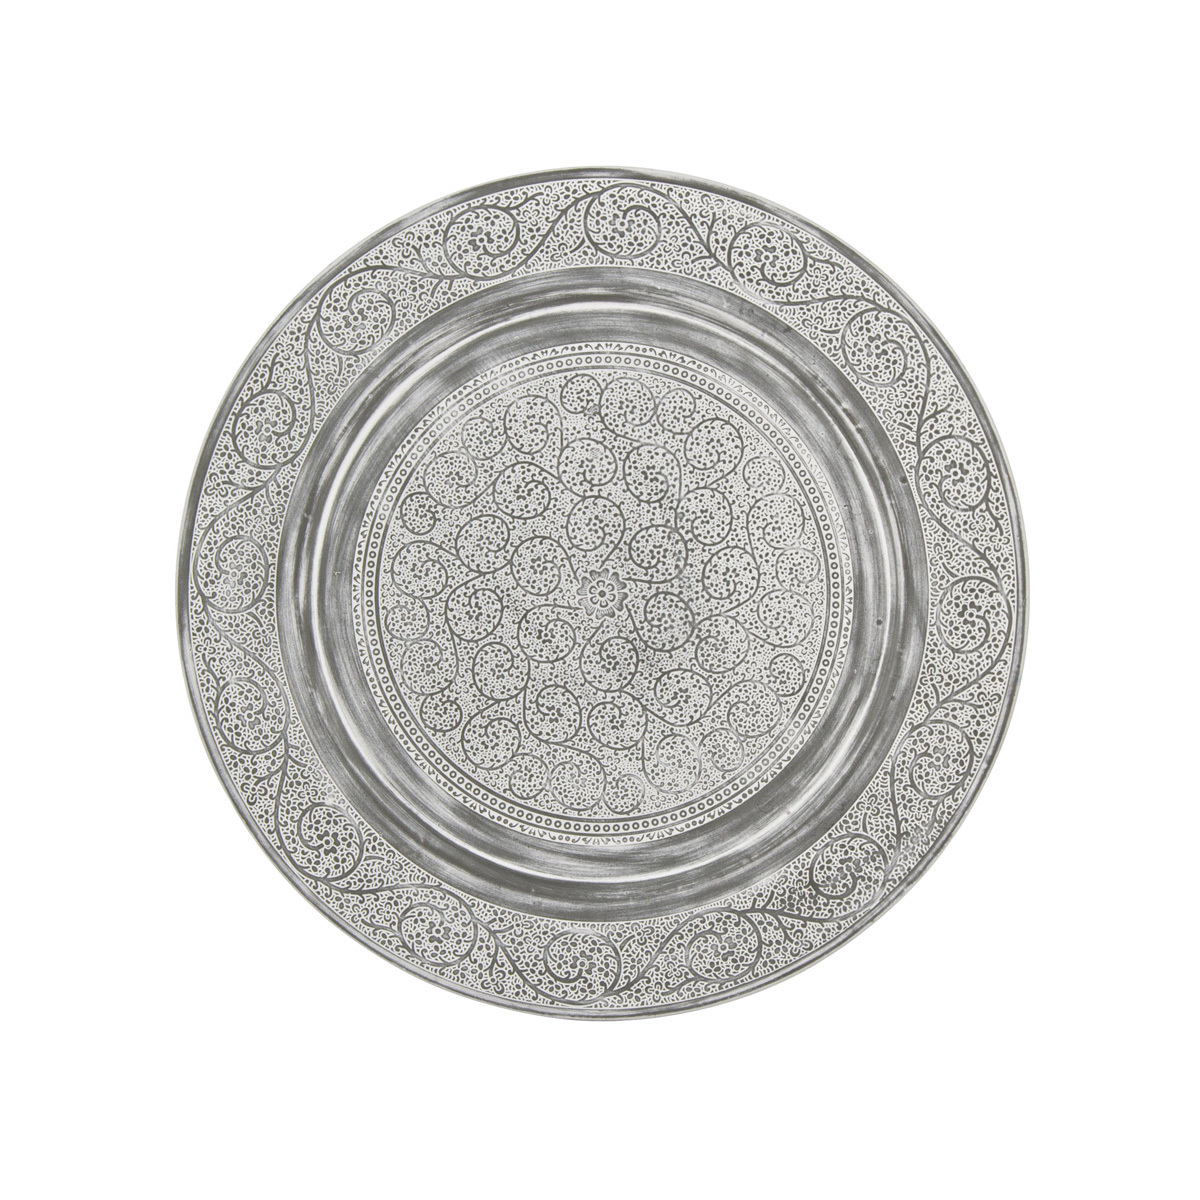 Photos 2: Bizzotto Round table in metal d. 50 0746051